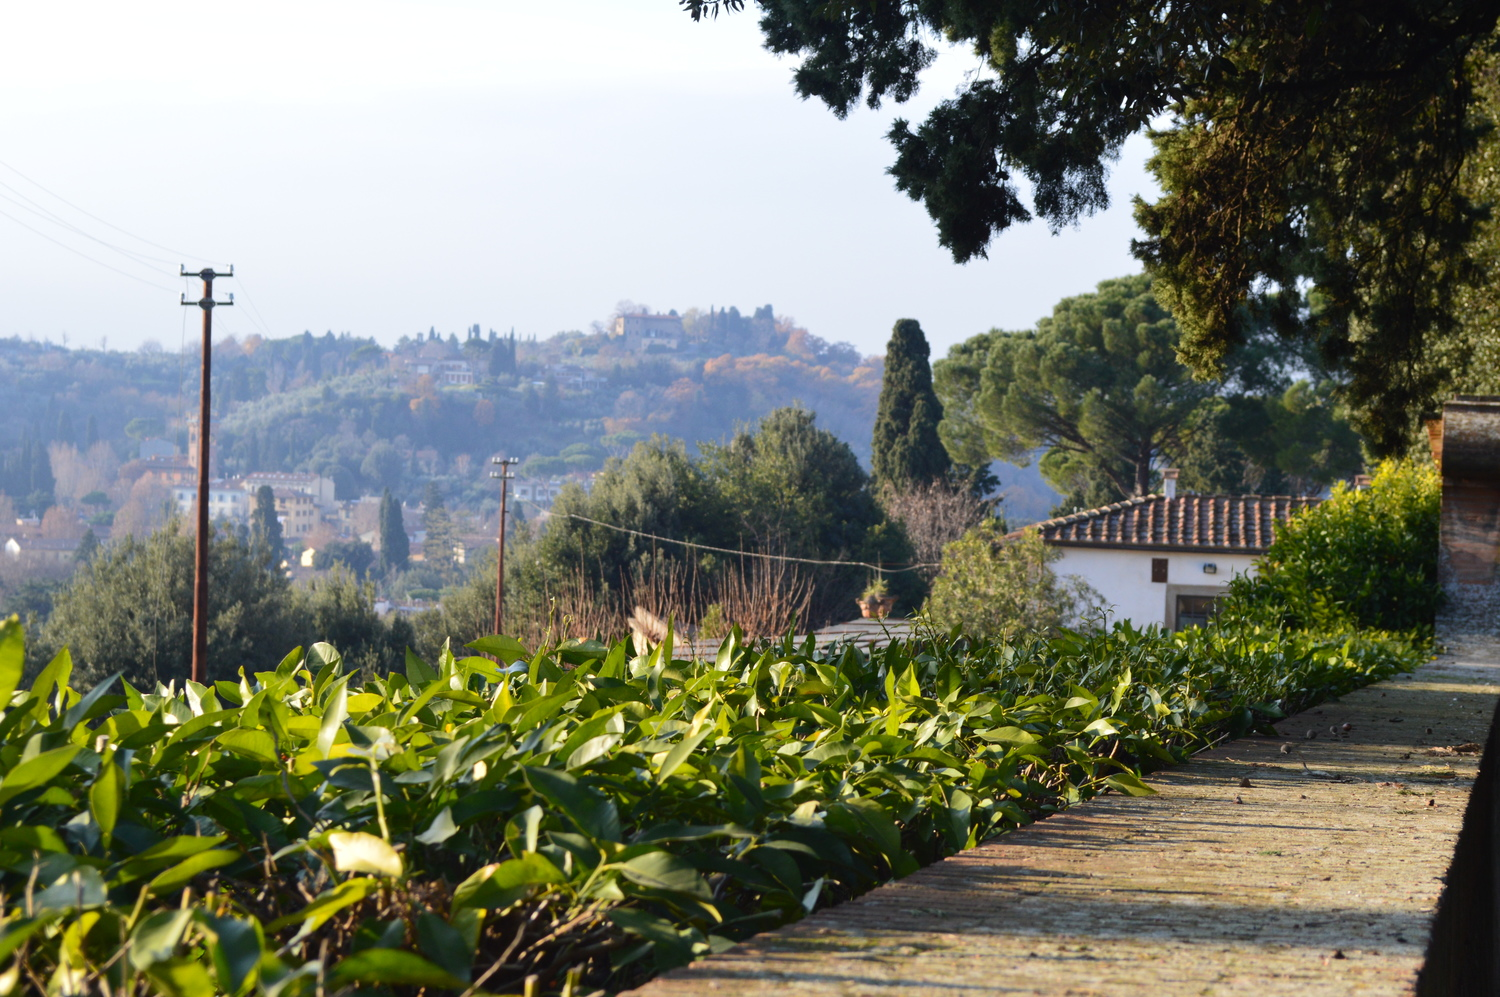 4 Amazing Day Trips from Florence, Italy - Tuscany is so beautiful it will blow your mind. You could easily spend a week in Florence itself, though if you'd like to see more of the area I highly recommend these day trips.